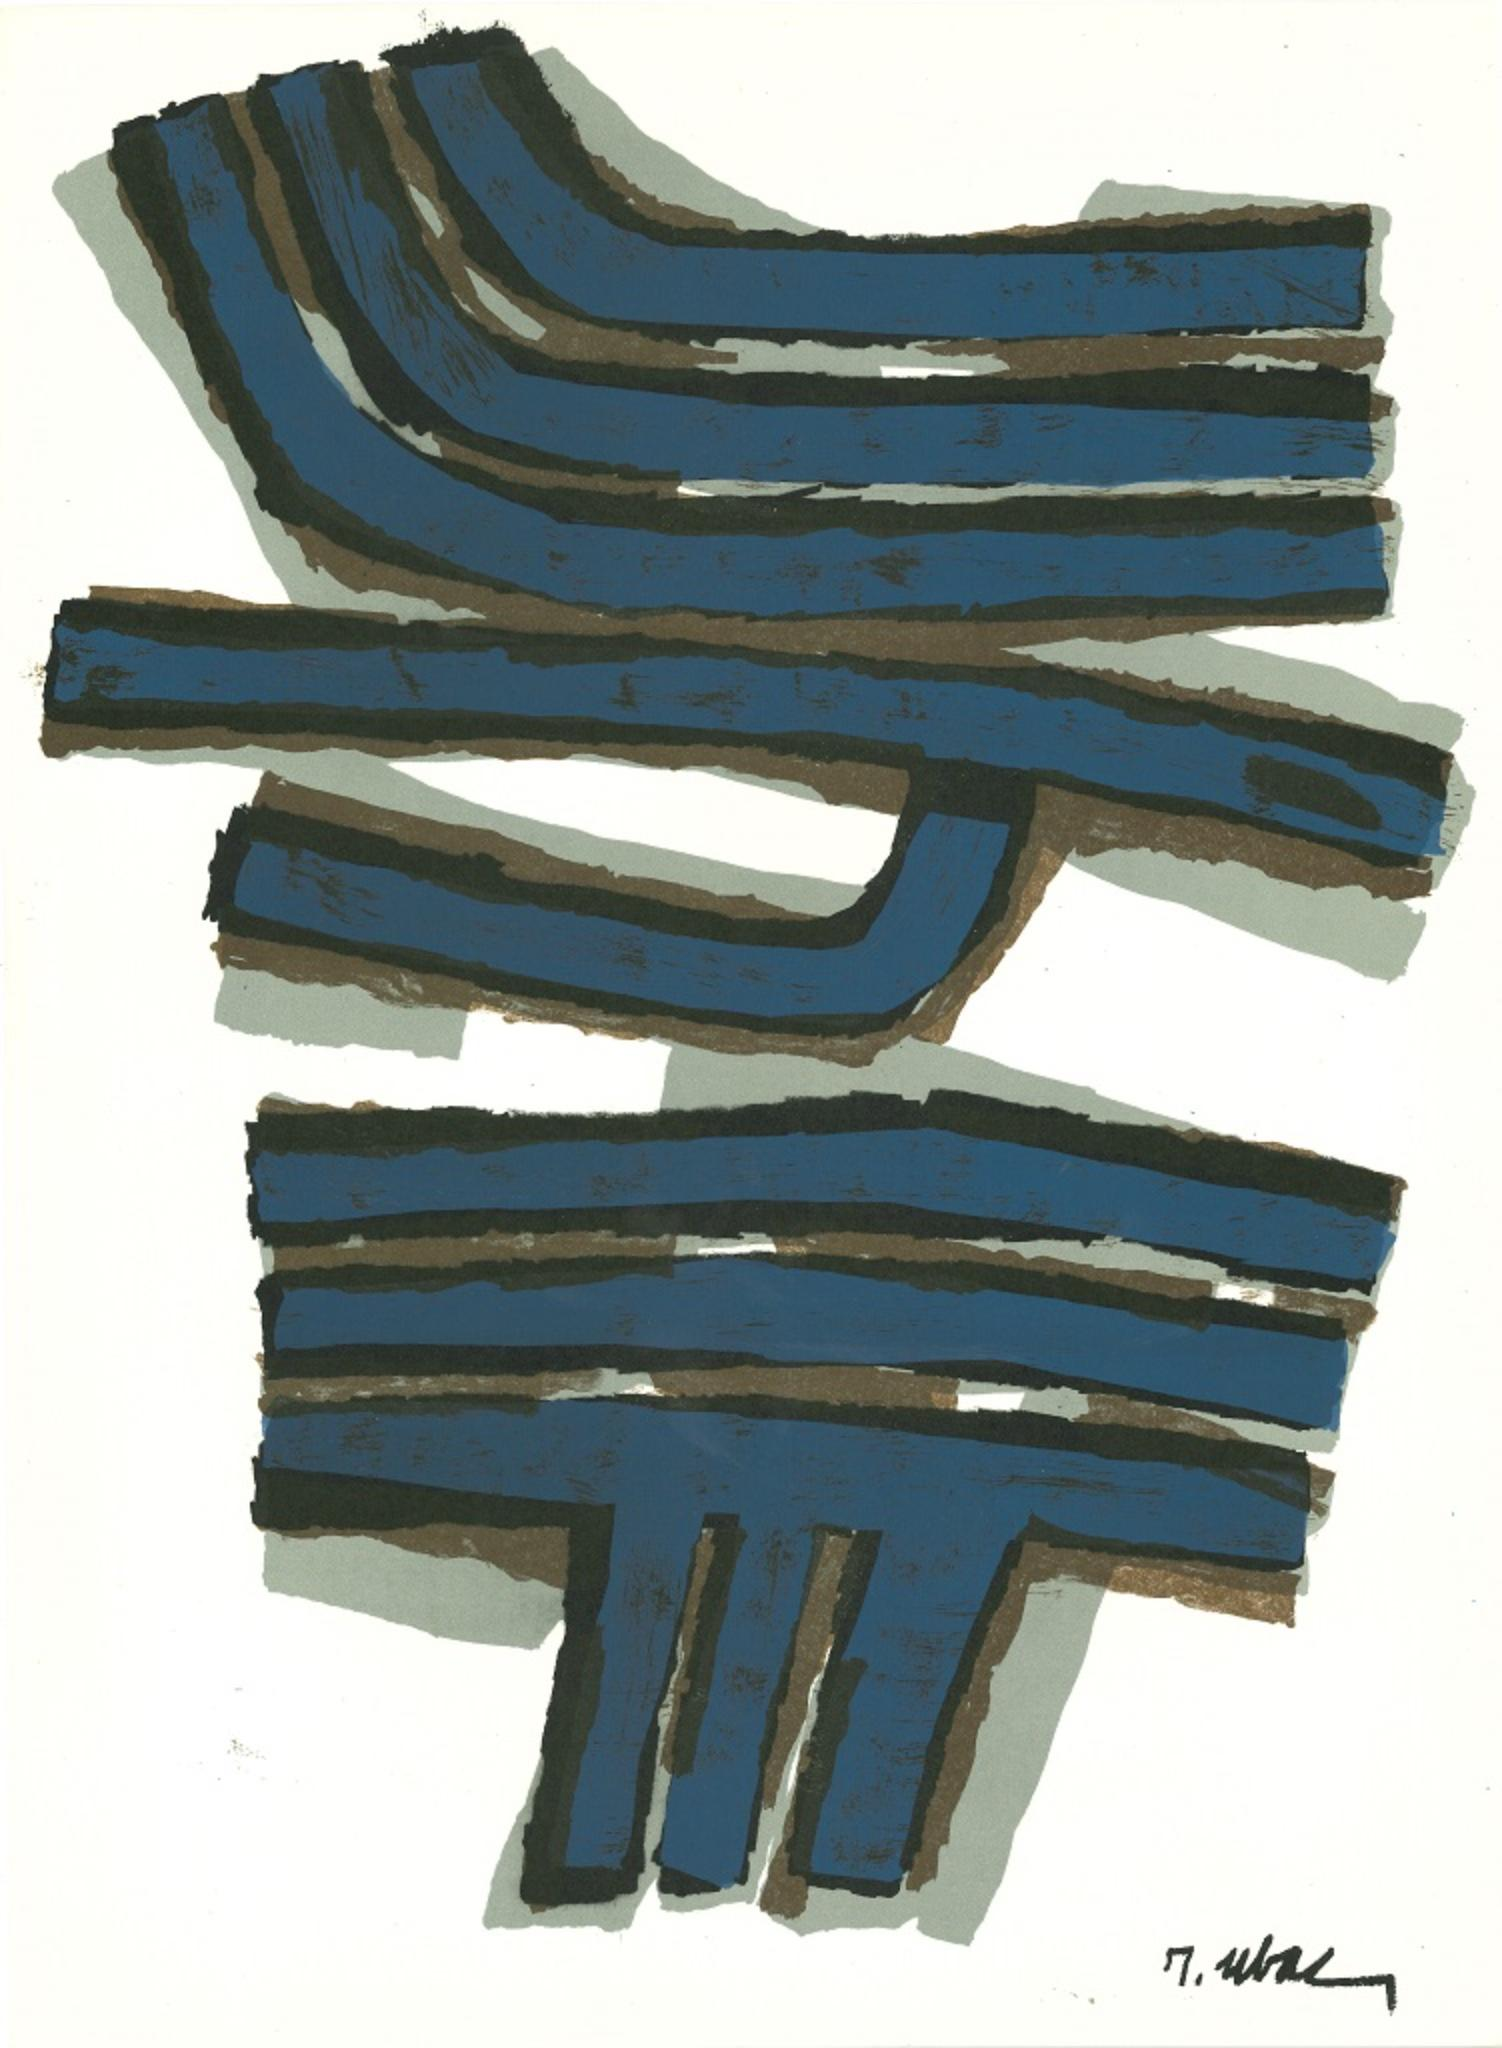 Abstract Composition - Original Lithograph by Raoul Ubac - 1965